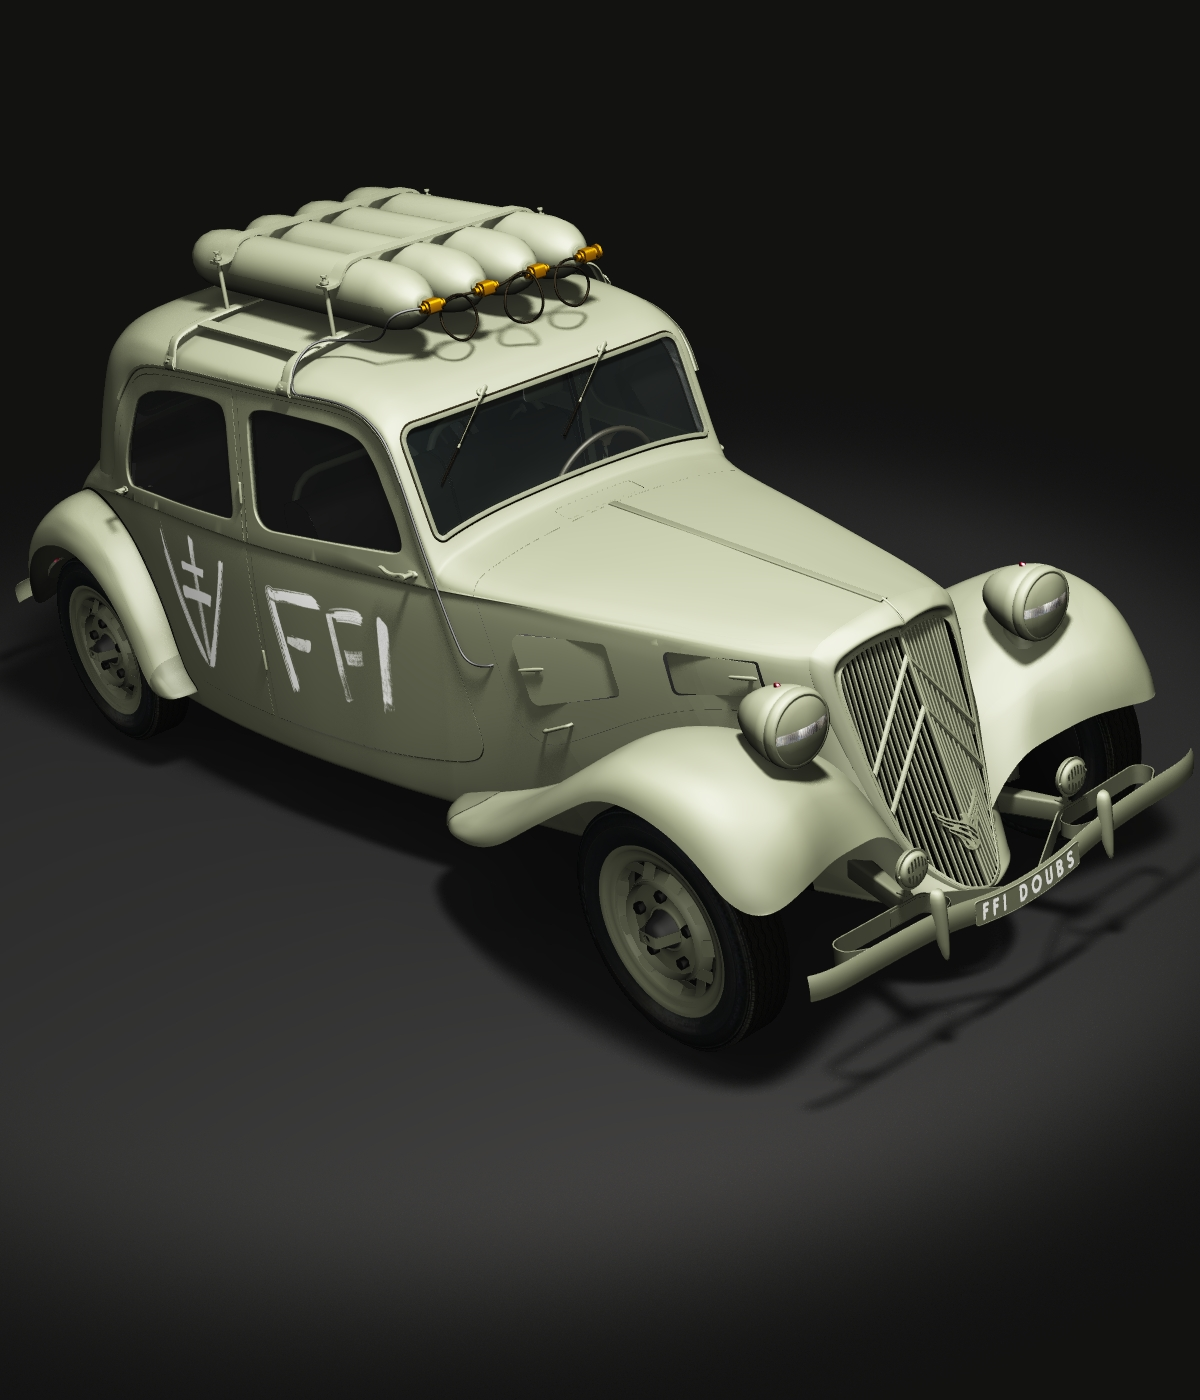 CITROEN TRACTION FFI - Extended License